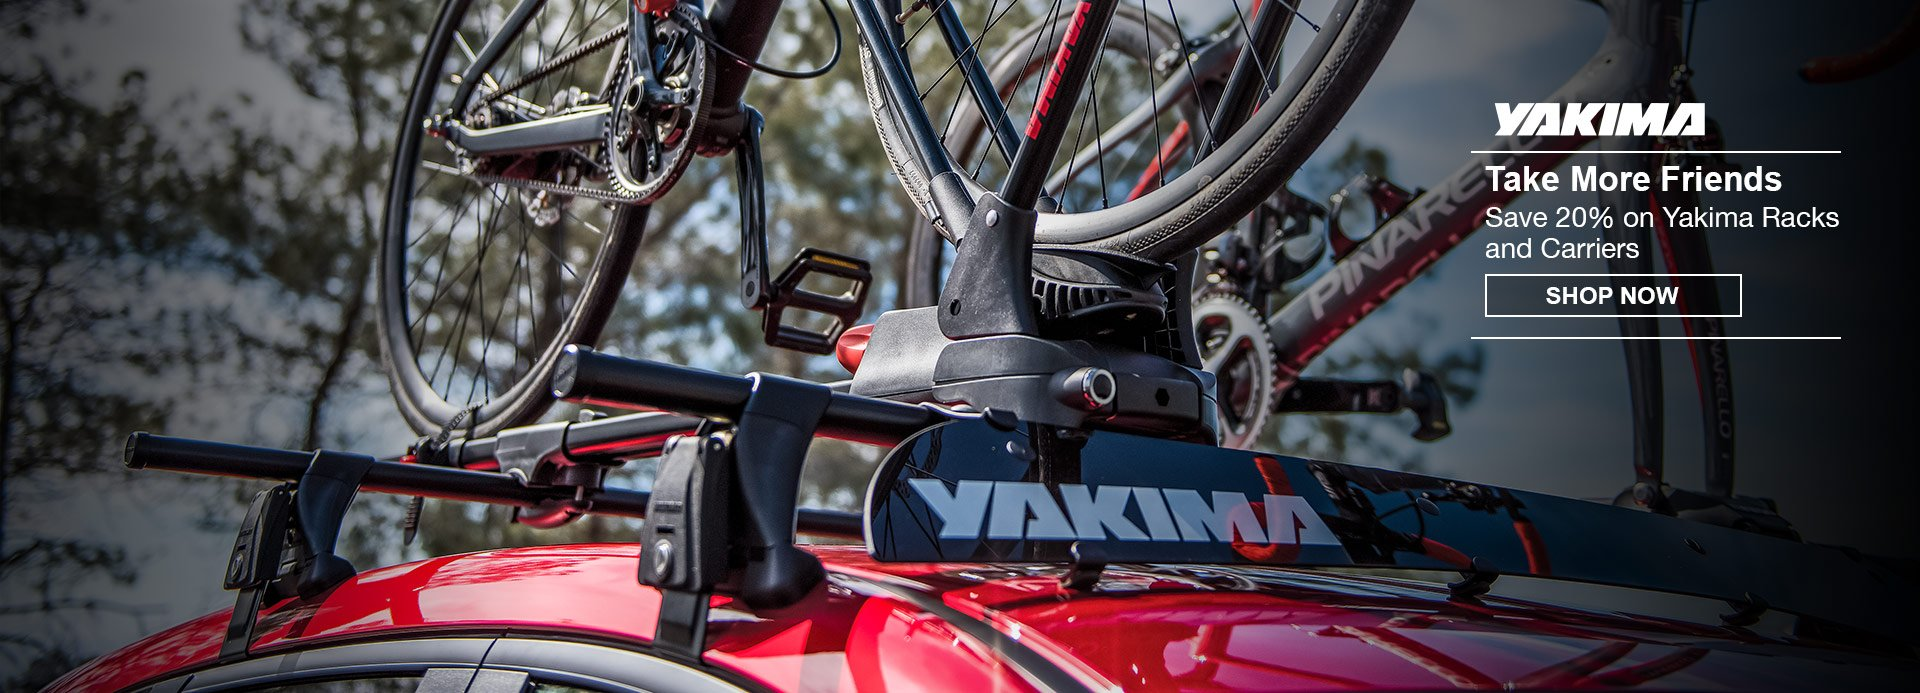 Yakima Racks and Carrier Systems on Amazon.com